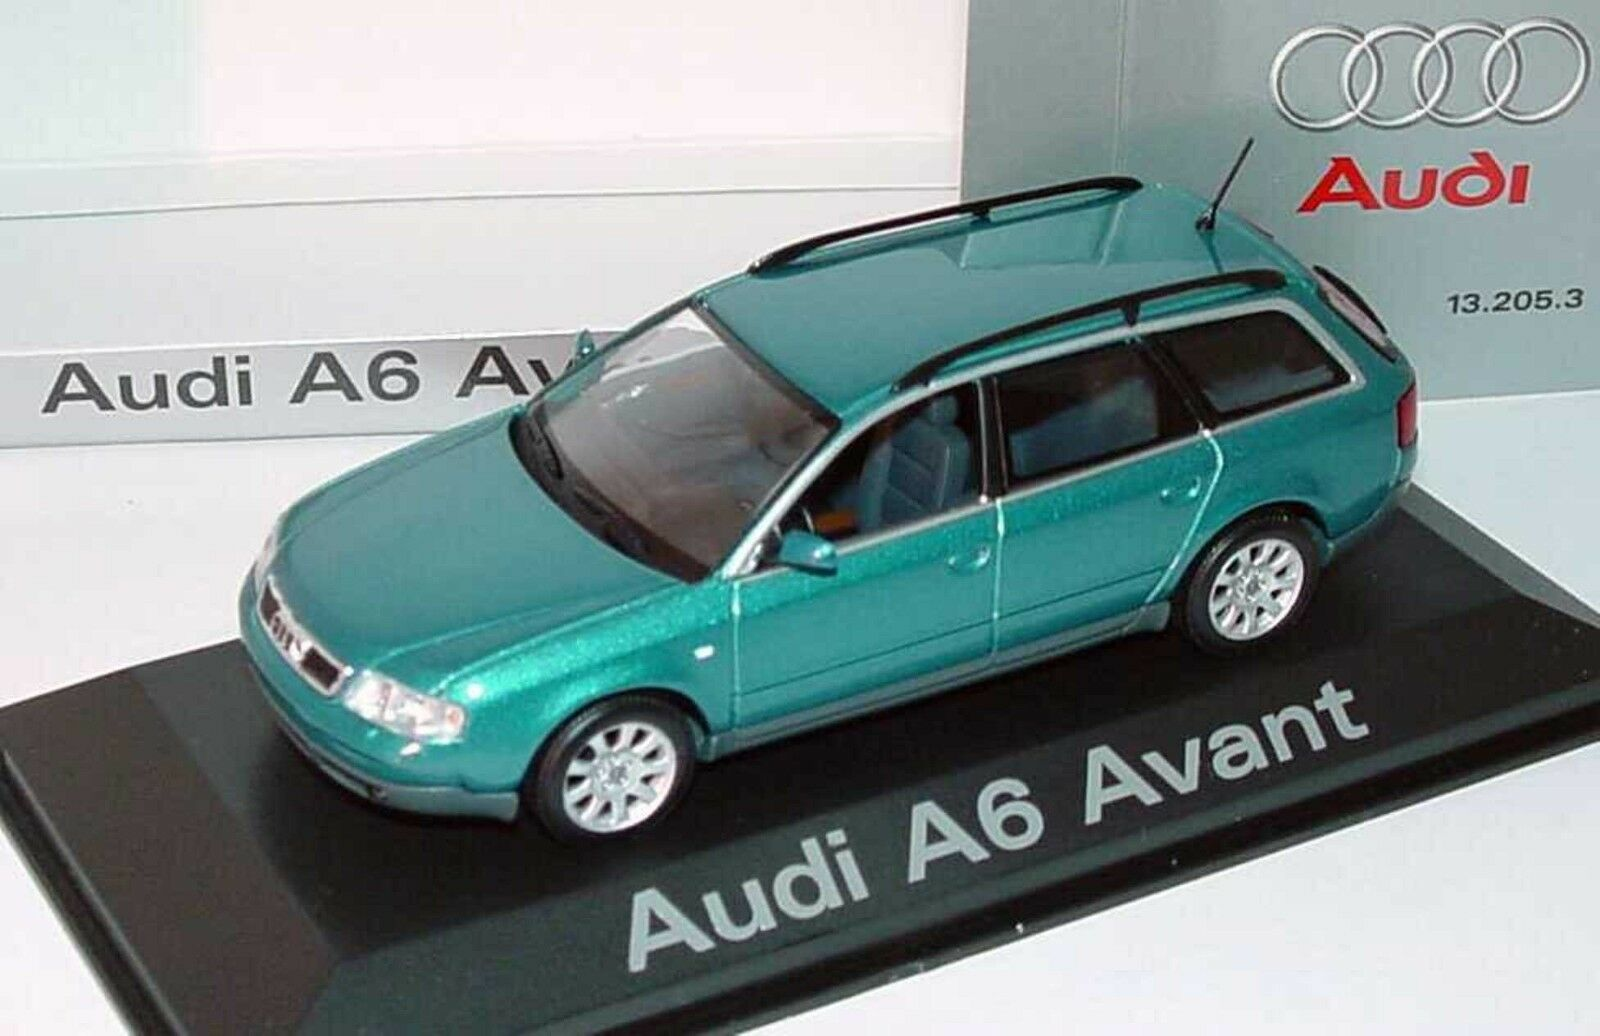 AUDI A6 AVANT BREAK 2.8 C5 MINICHAMPS 1 43 TURMALINGRUNMET STATION WAGON SW 2001